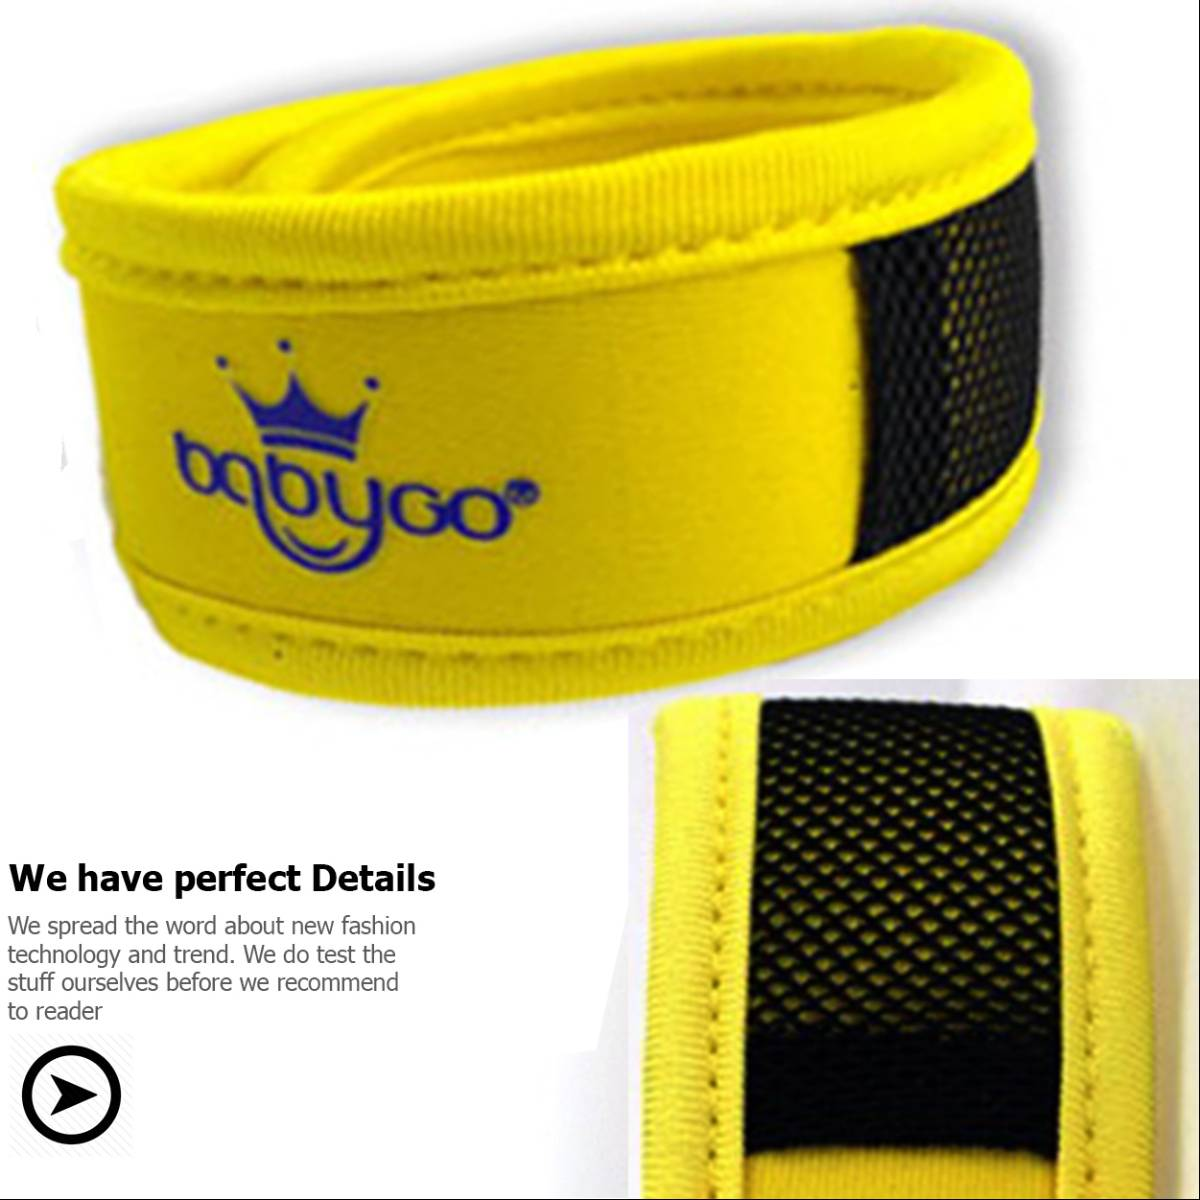 Babygo Neoprene Mosquito Repellent Wristband Yellow (gelang Anti Nyamuk)1